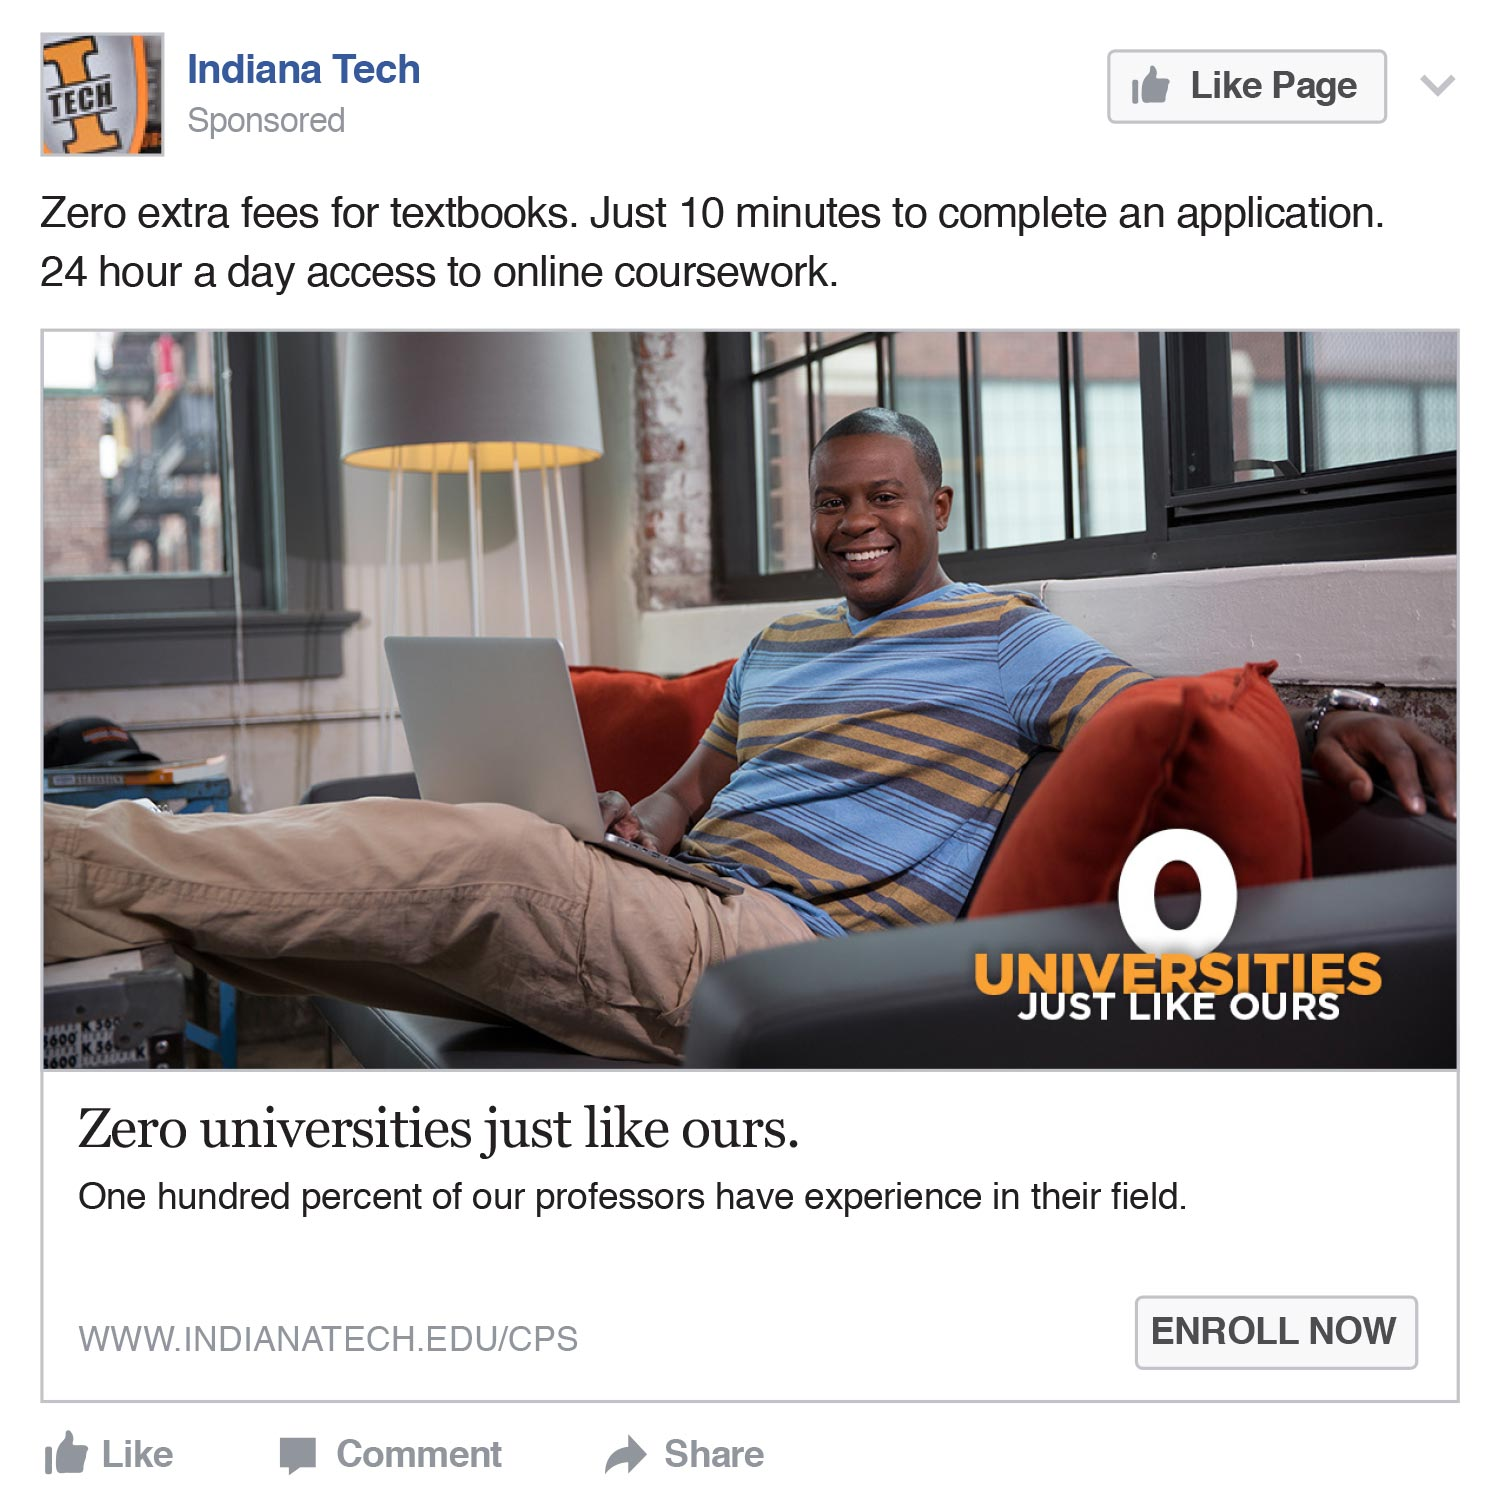 Indiana Tech: Zero Universities Like Ours Facebook ad